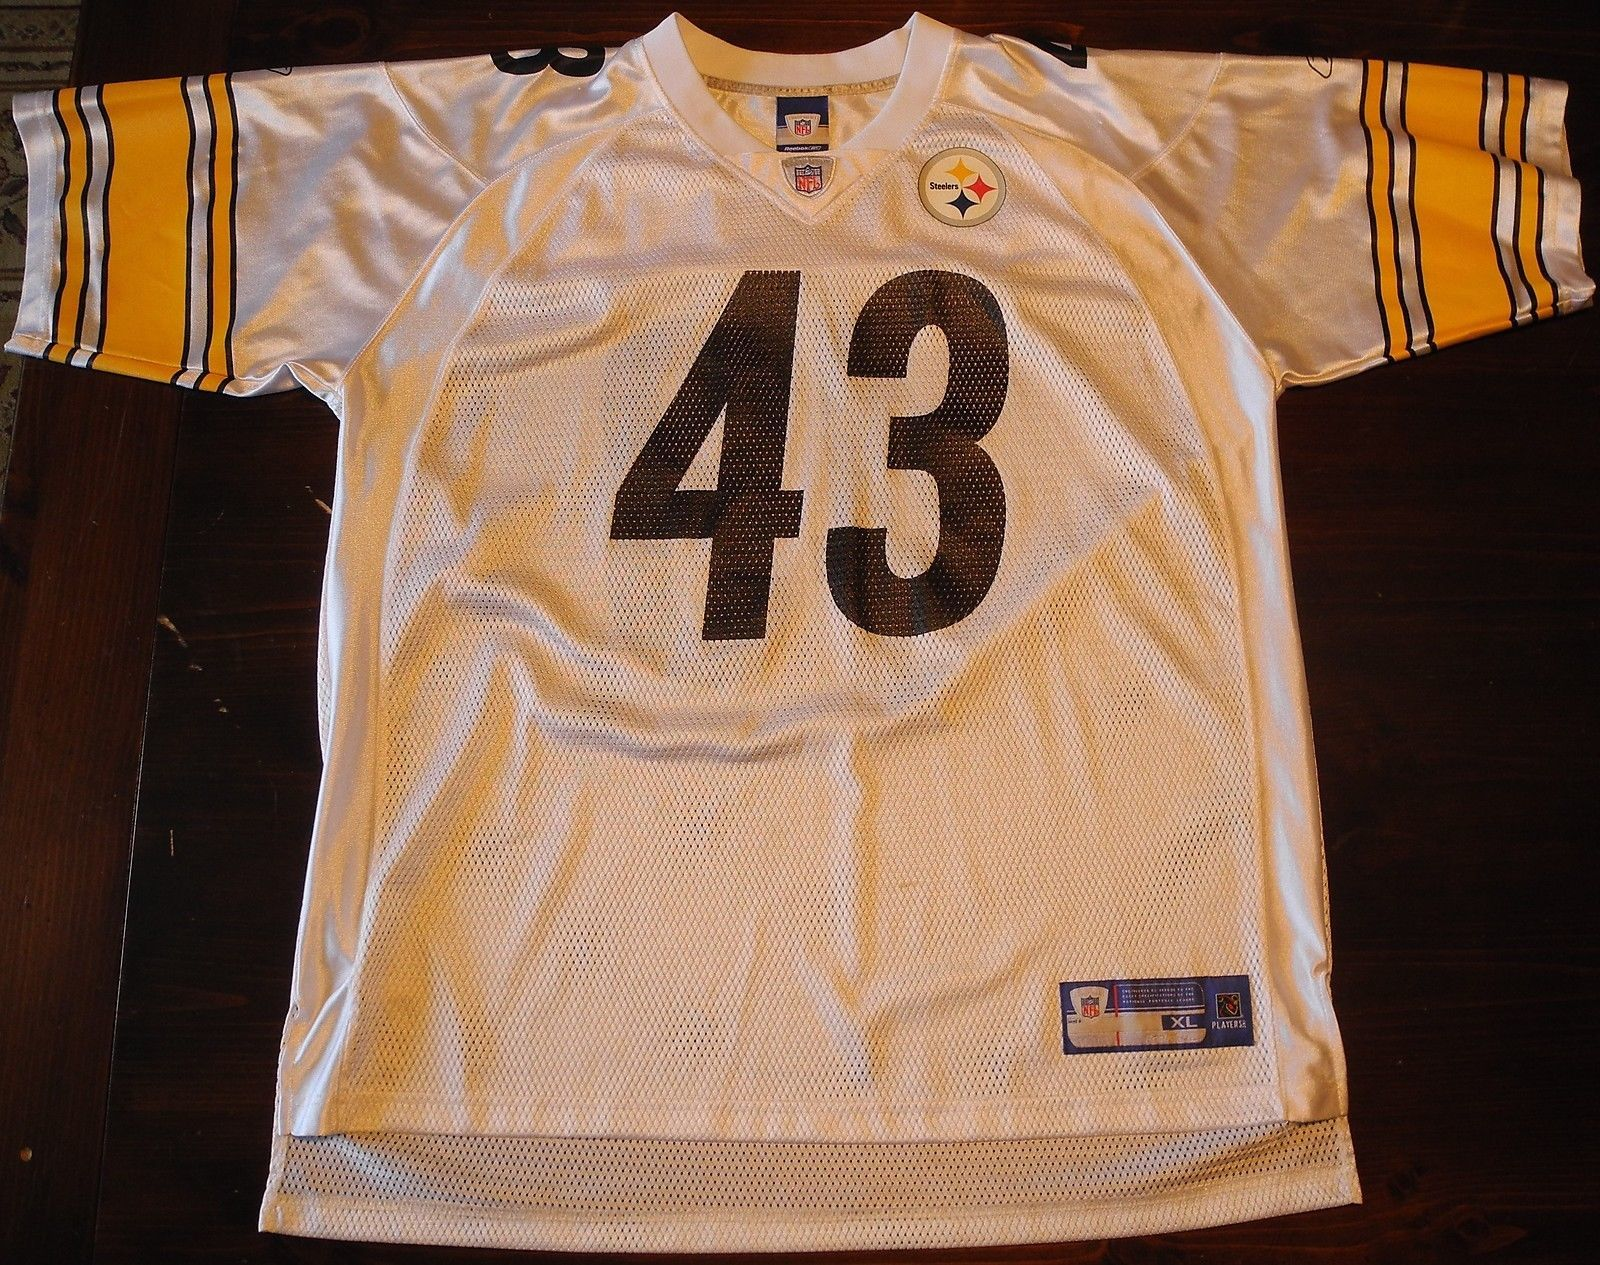 Primary image for Troy Polamalu Number #43 Jersey Pittsburgh Steelers Reebok Jersey Adult XL White